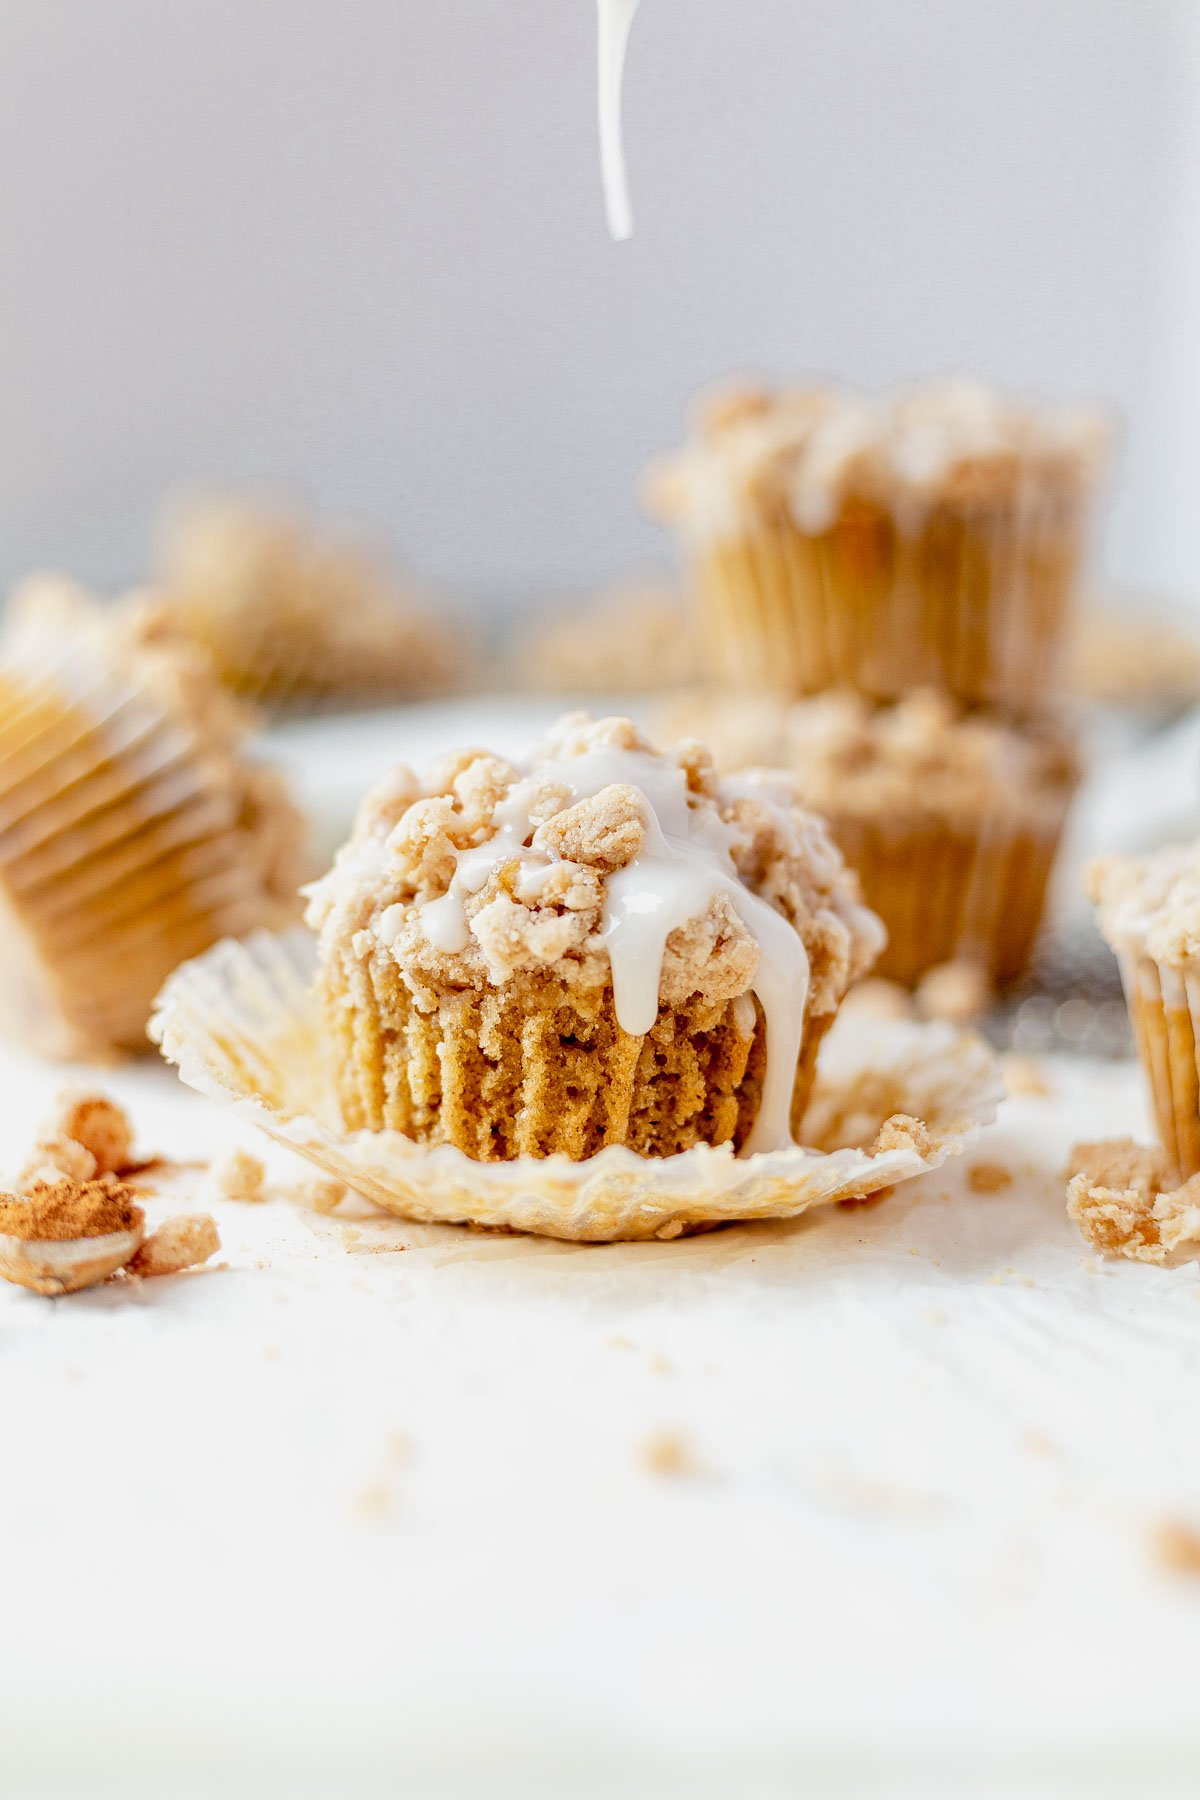 coffee cake muffin unwrapped with icing drizzled on top